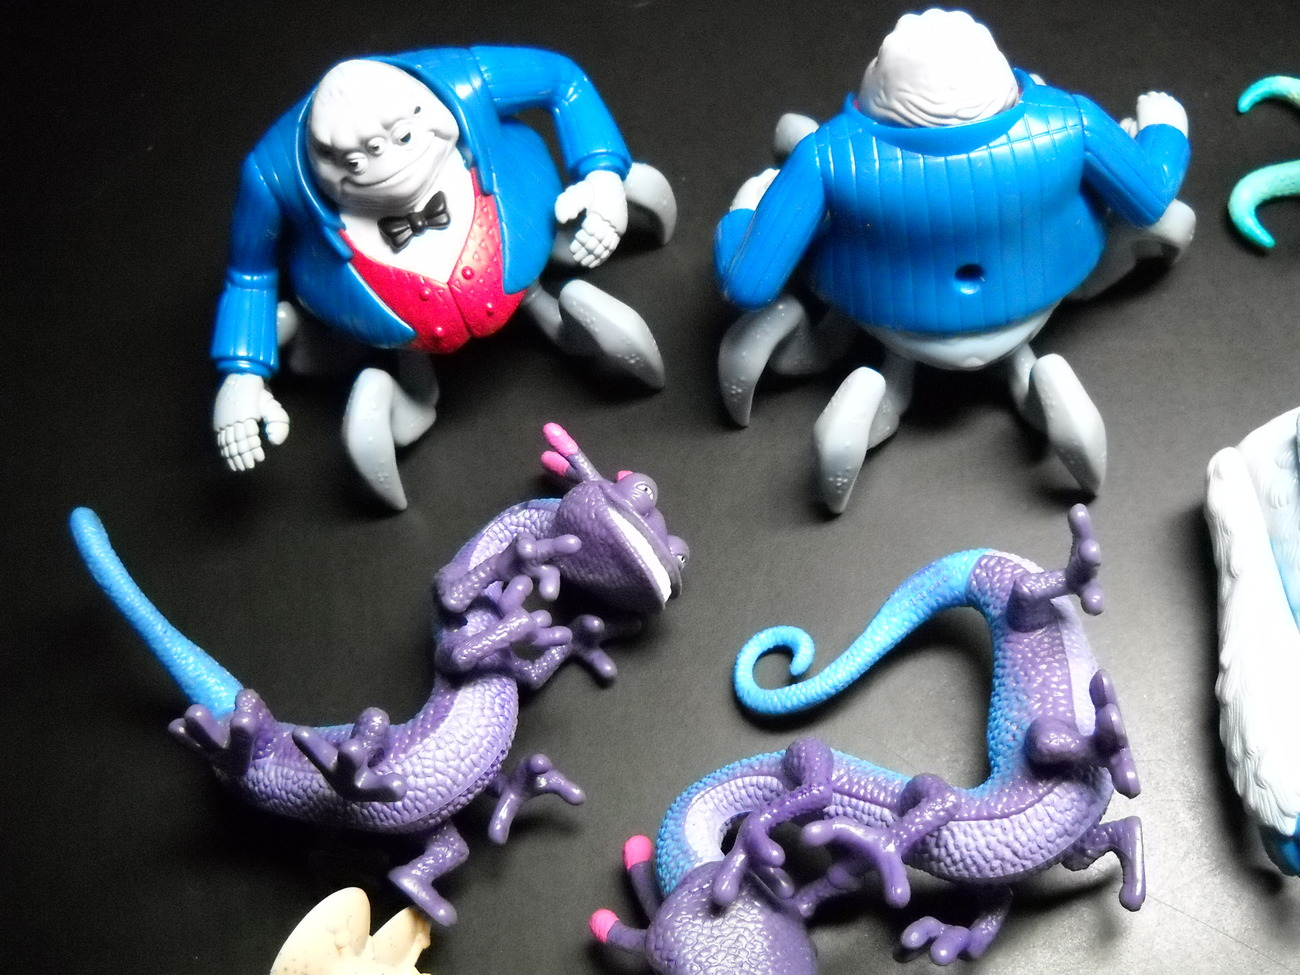 Mash of Monsters Inc Figures Disney Pixar McDonalds Toy Promotions Sully Others